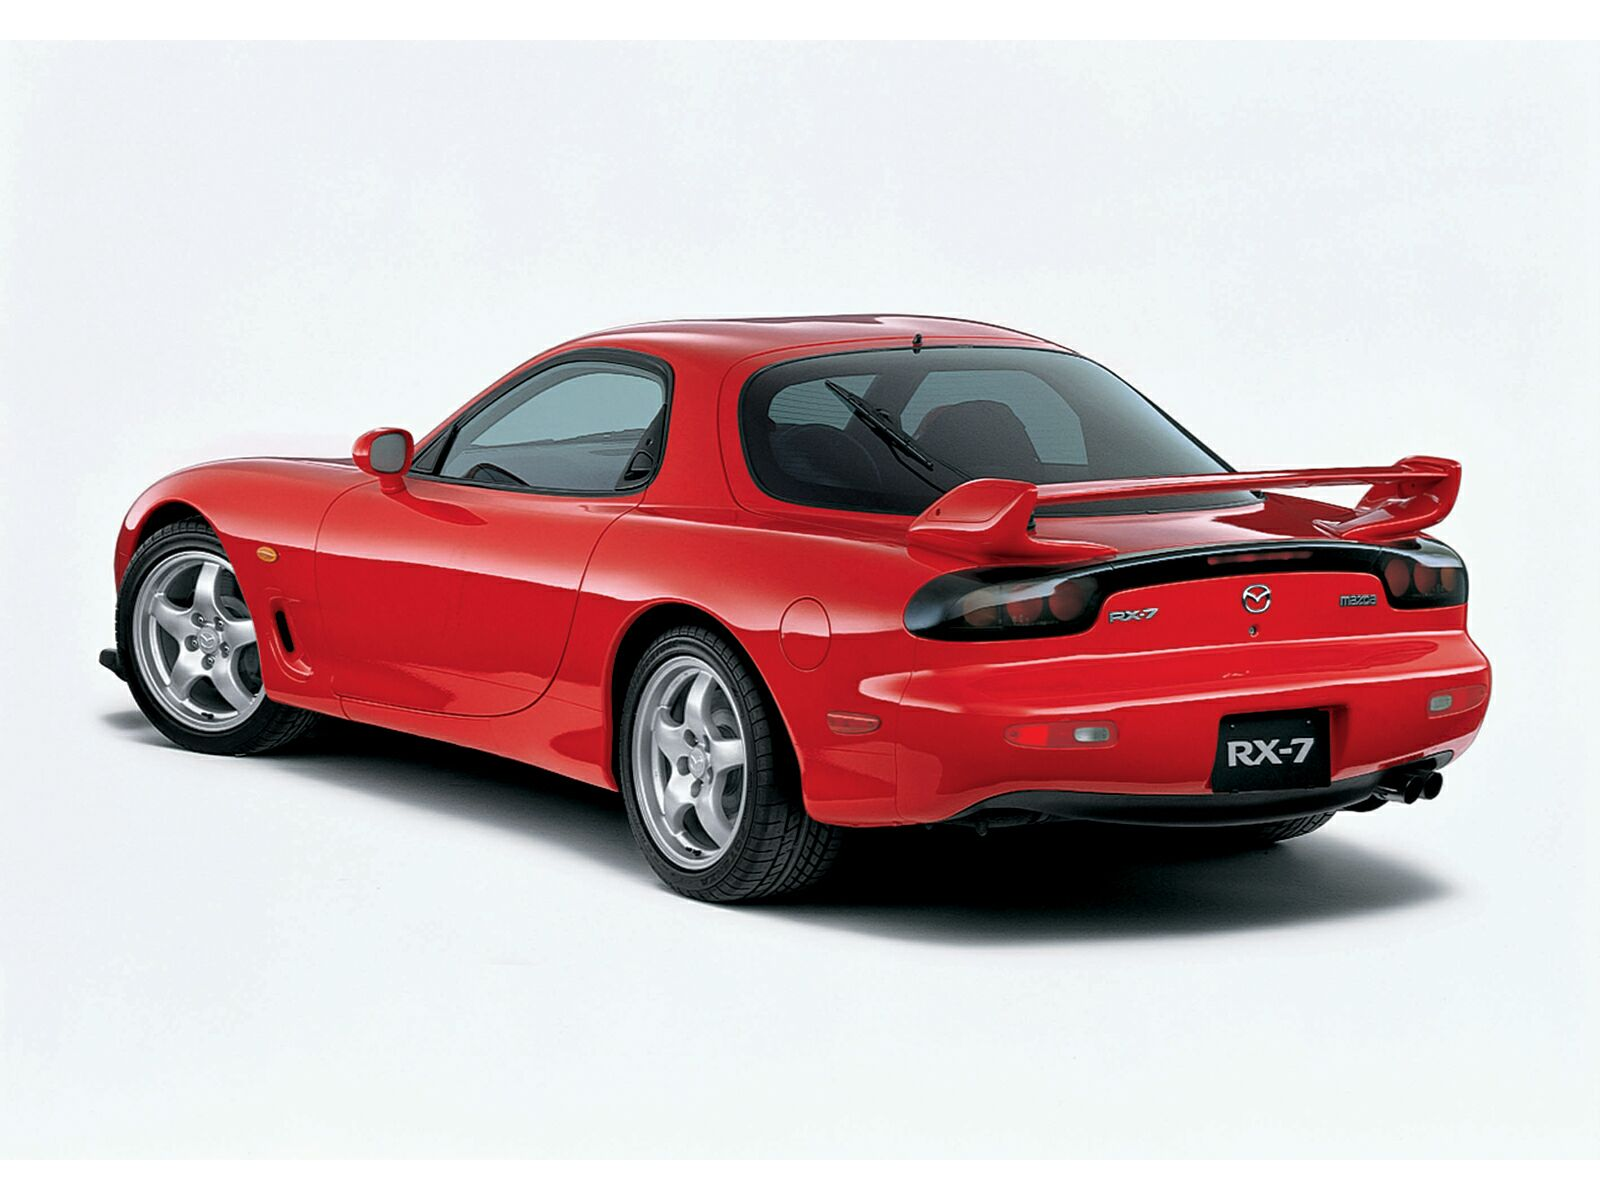 Mazda Rx 7 Photos Photogallery With 31 Pics Carsbase Com